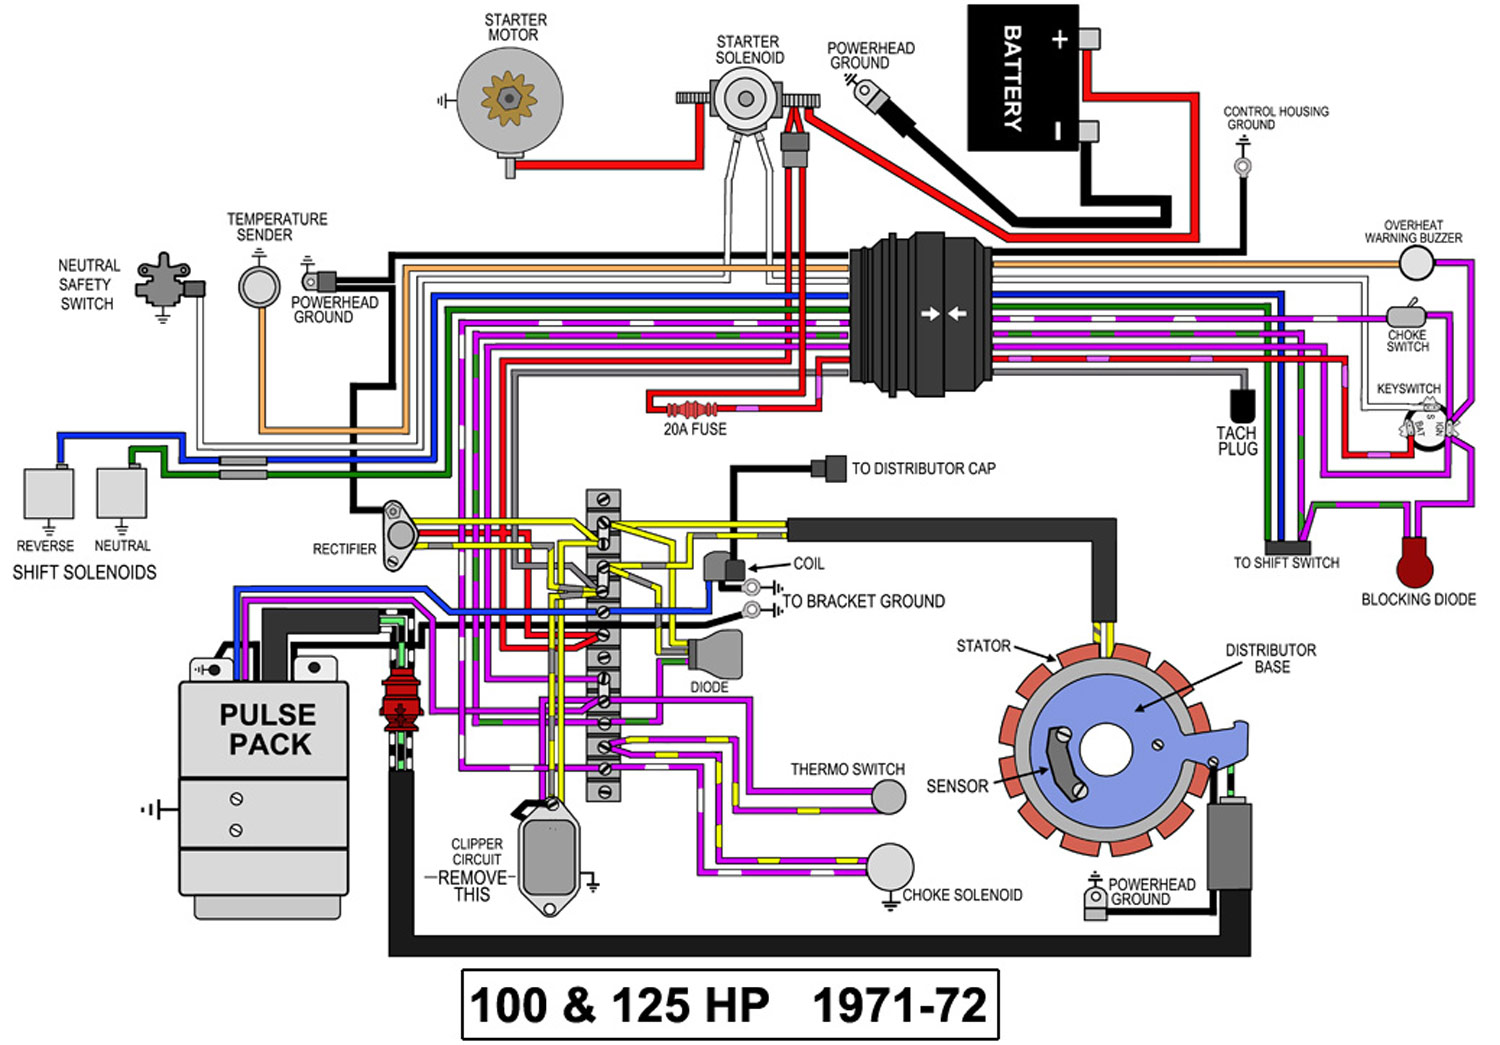 johnson outboard wiring diagram 1991 88 hp wiring diagram johnson 50 hp outboard #8